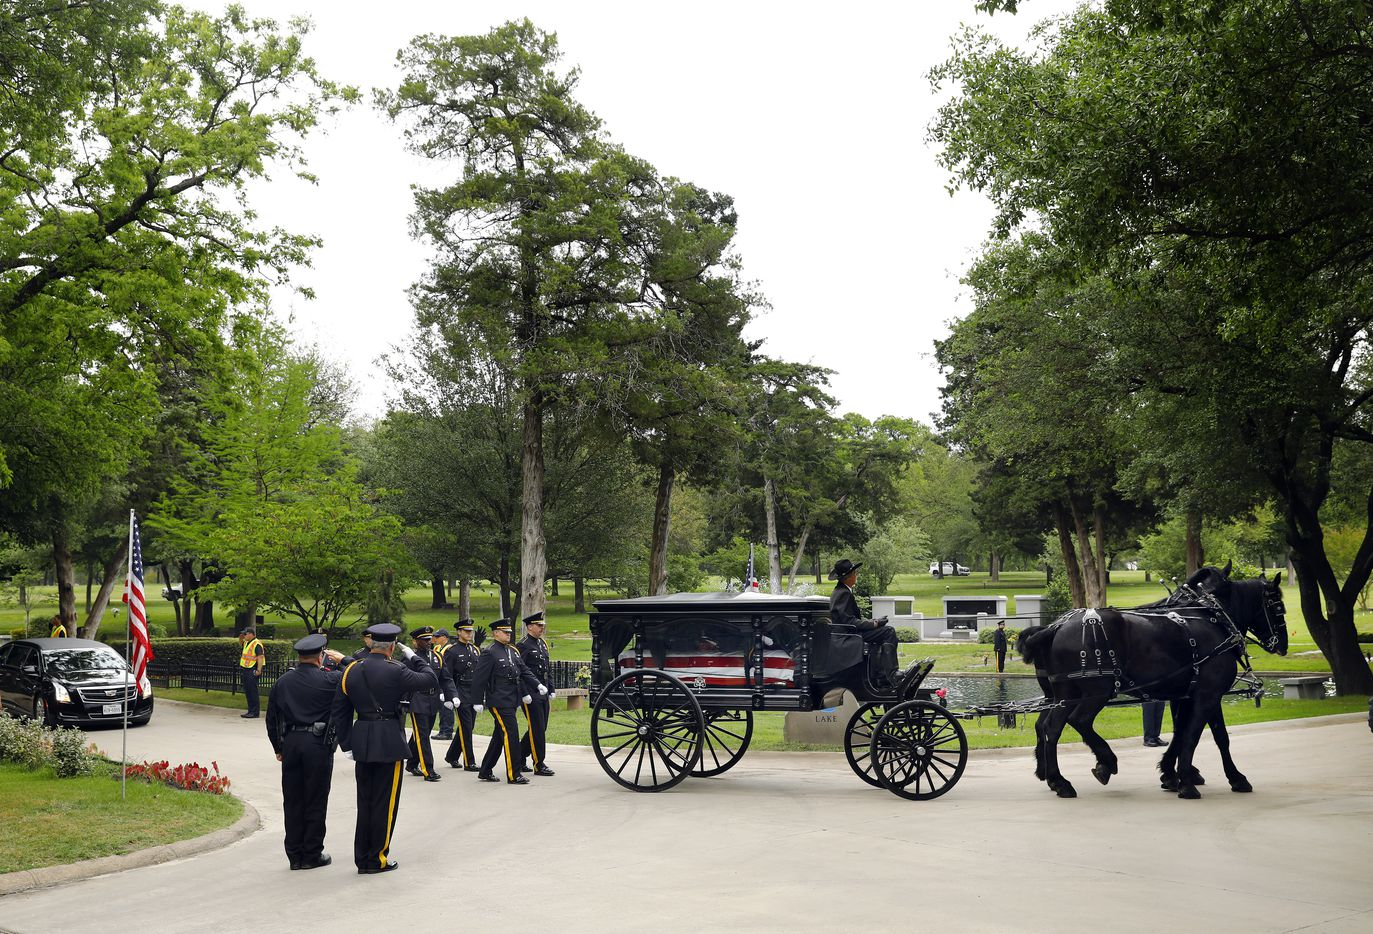 The Dallas Police Honor Guard escorts the horse-drawn carriage carrying slain Dallas police officer Rogelio Santander, Jr. to his resting place in the Garden of Honor.